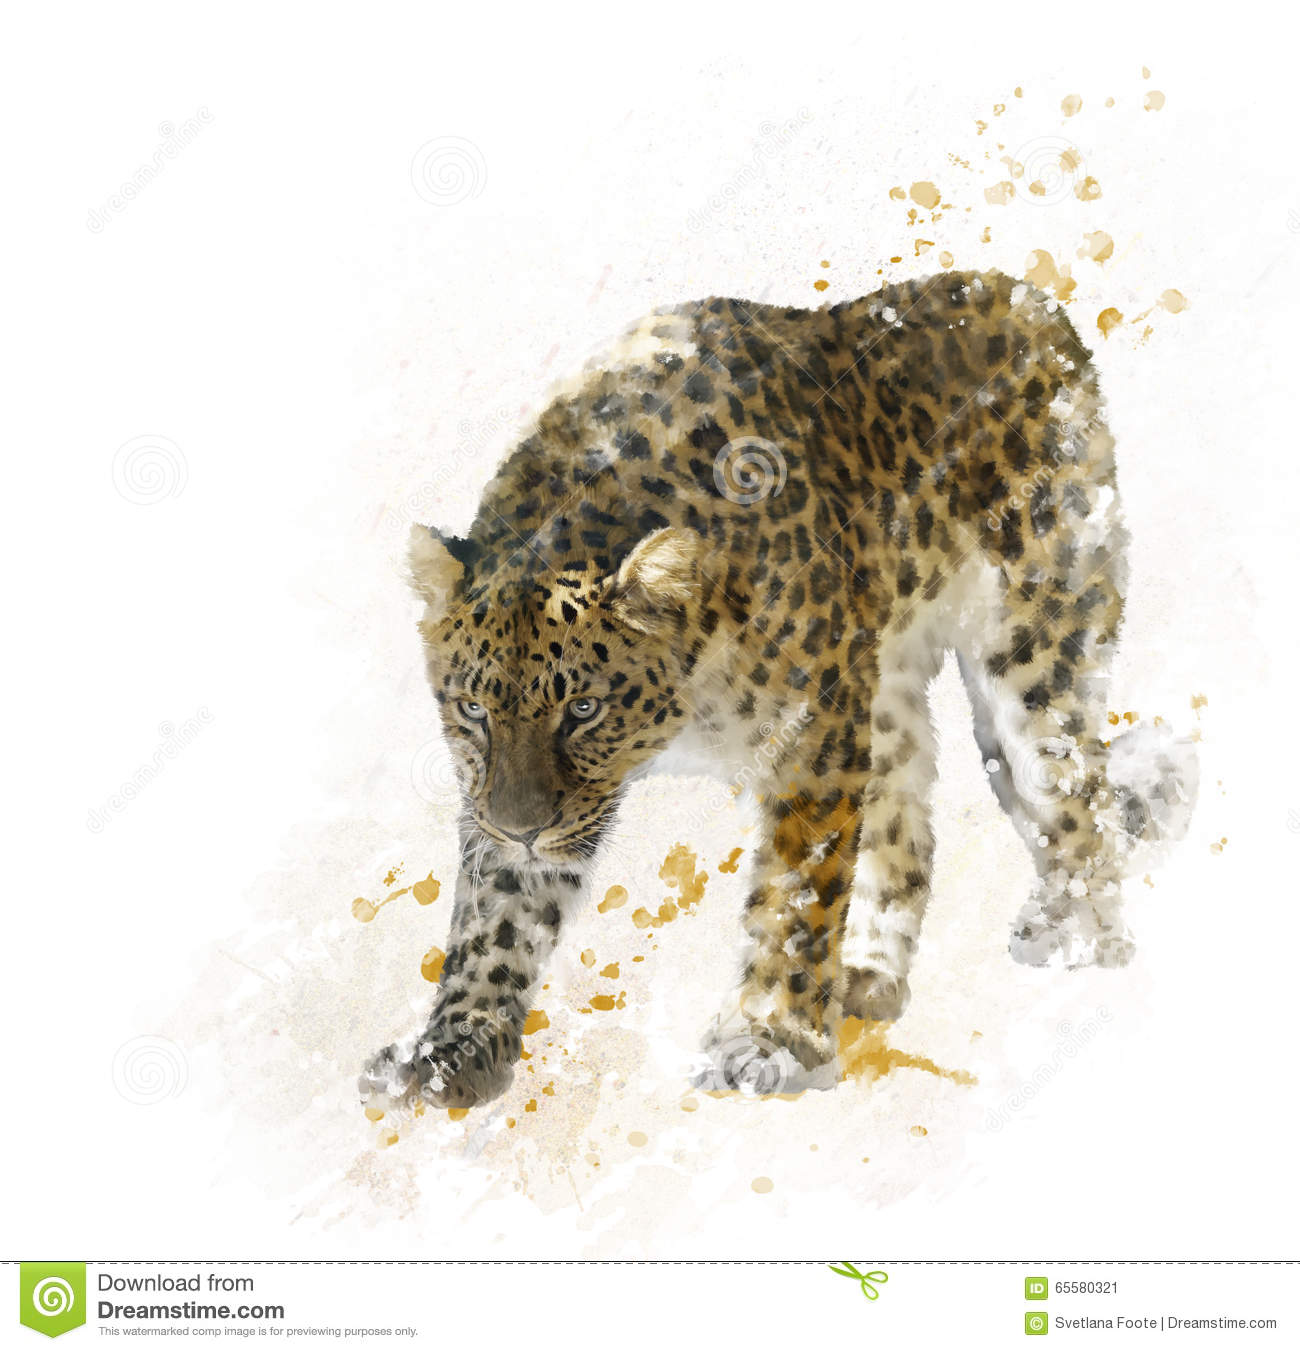 Pintura de Digitas do leopardo